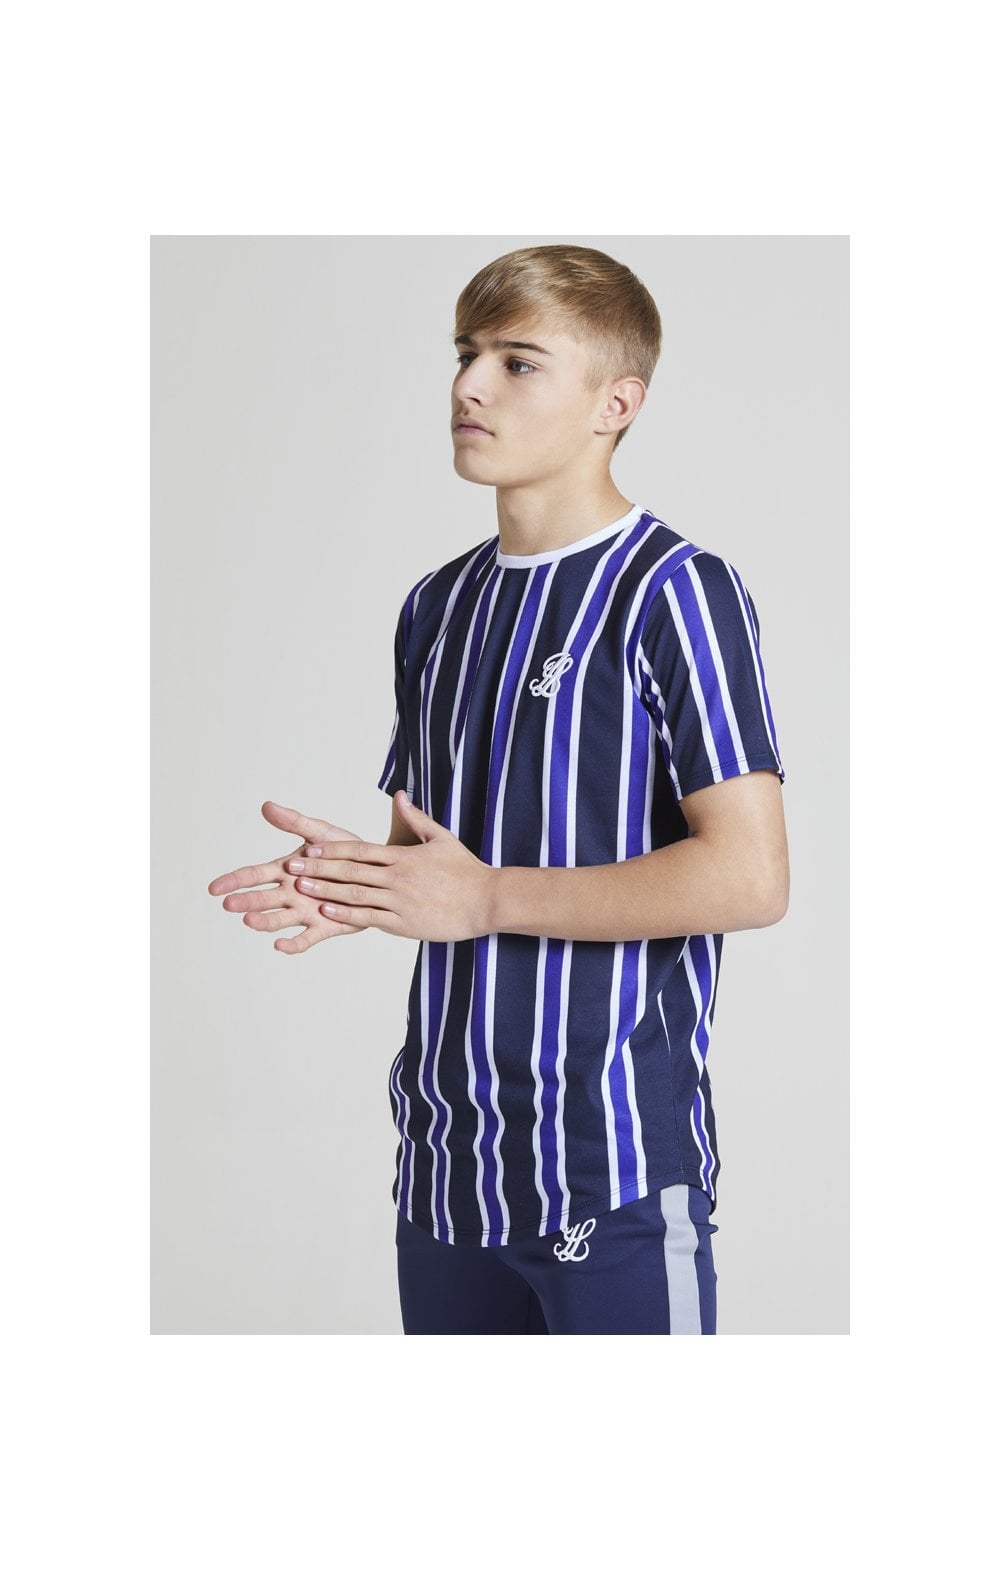 Illusive London Stripe tee - Navy, Purple & White (2)